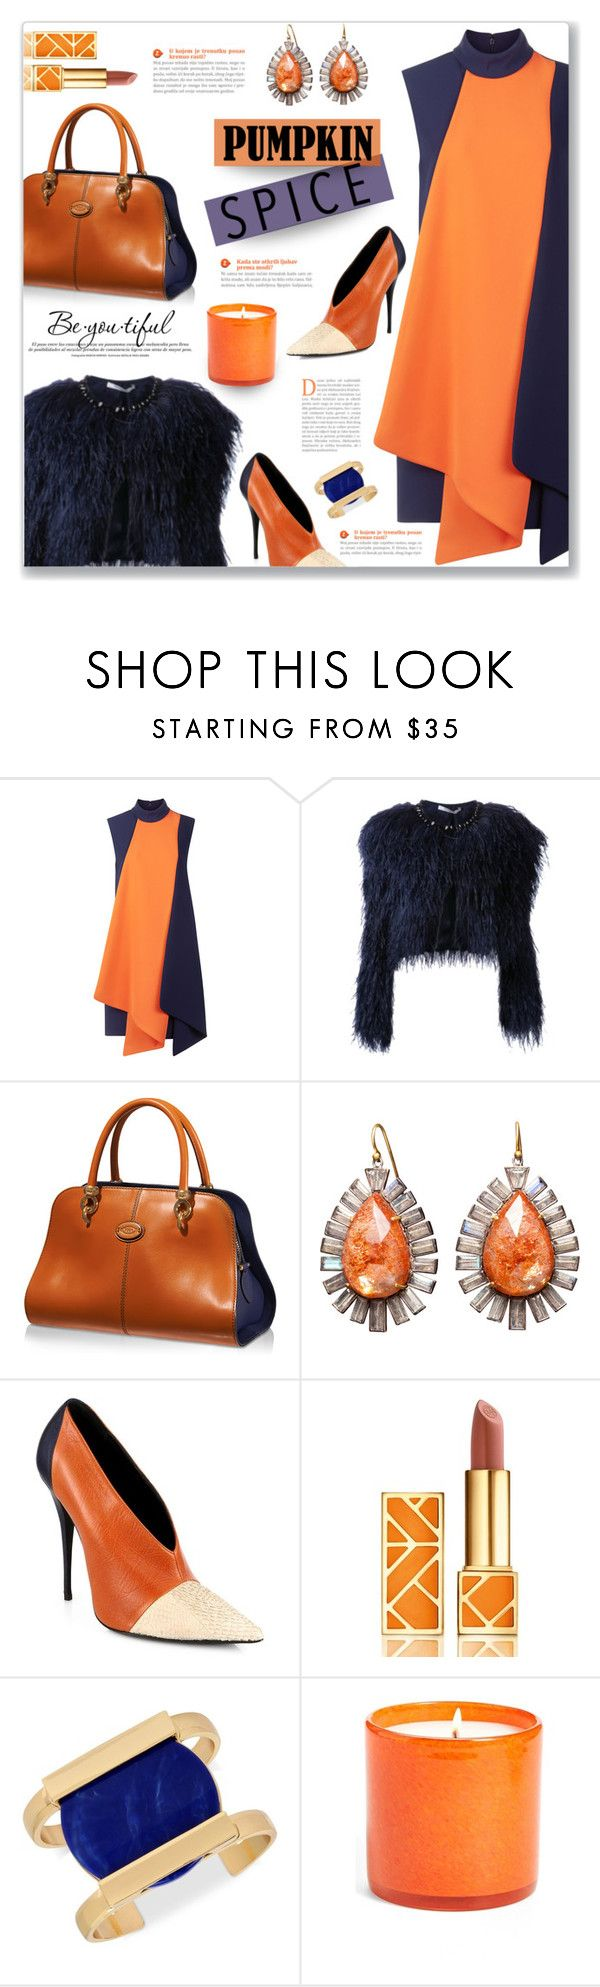 """""""Pumpkin Spice Style"""" by viebunny ❤ liked on Polyvore featuring Victoria, Victoria Beckham, Givenchy, Tod's, Nak Armstrong, Narciso Rodriguez, Tory Burch, INC International Concepts, LAFCO and Schone"""